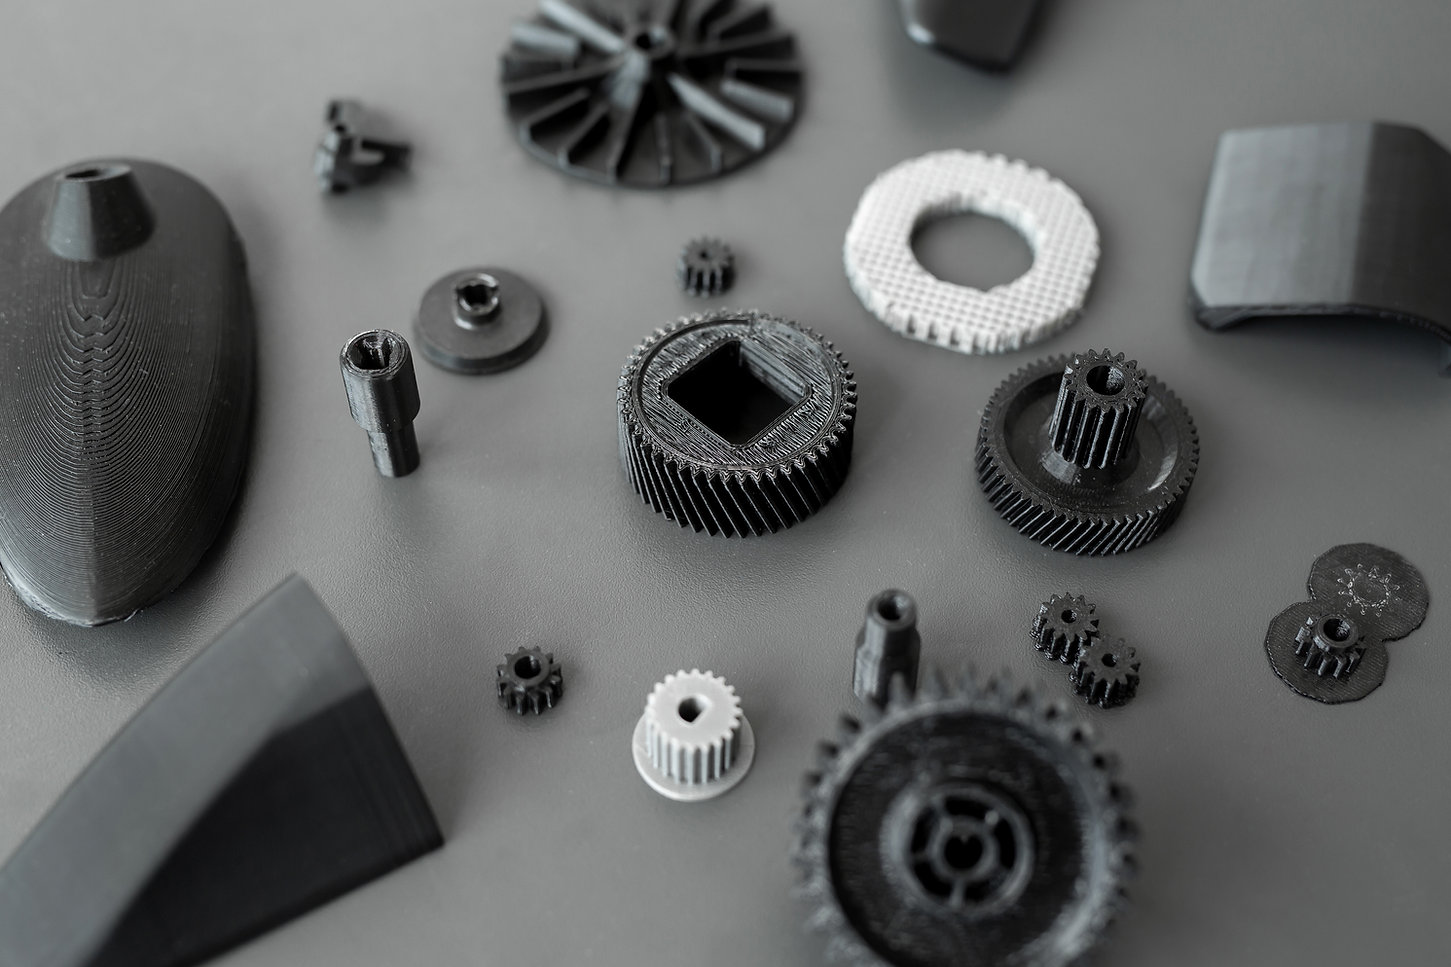 3d printed objects on the table in the laboratory.jpg